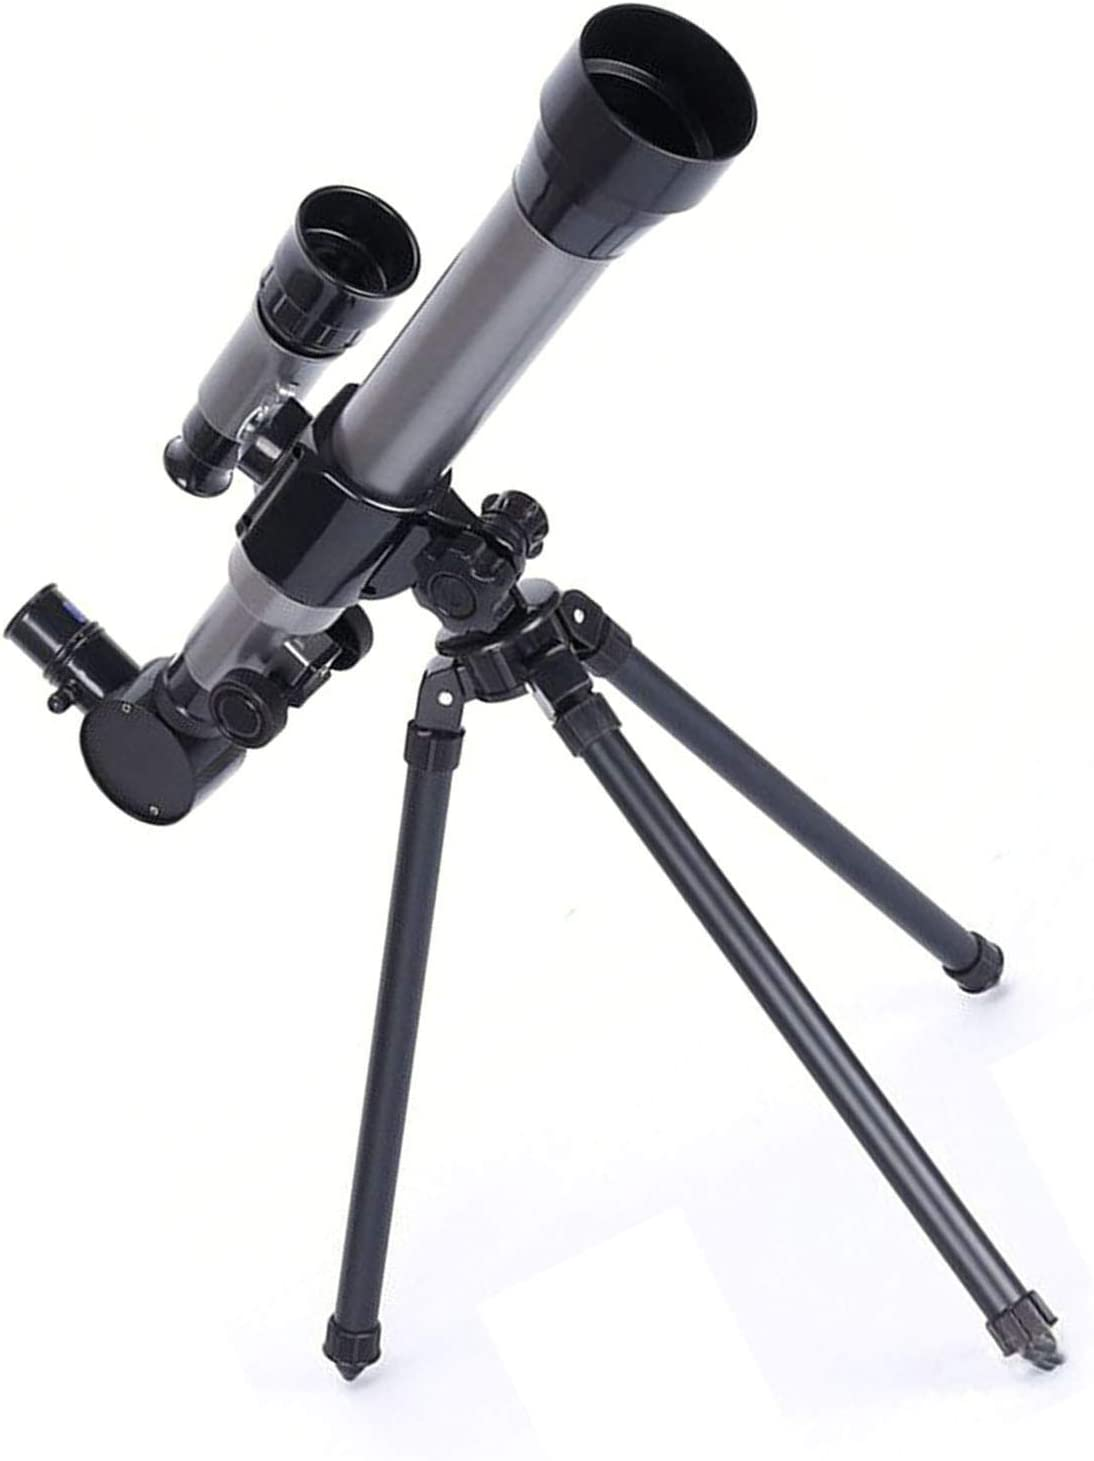 GAXQFEI Telescope for Educ Max 79% OFF Ranking TOP8 Kids Astronomical